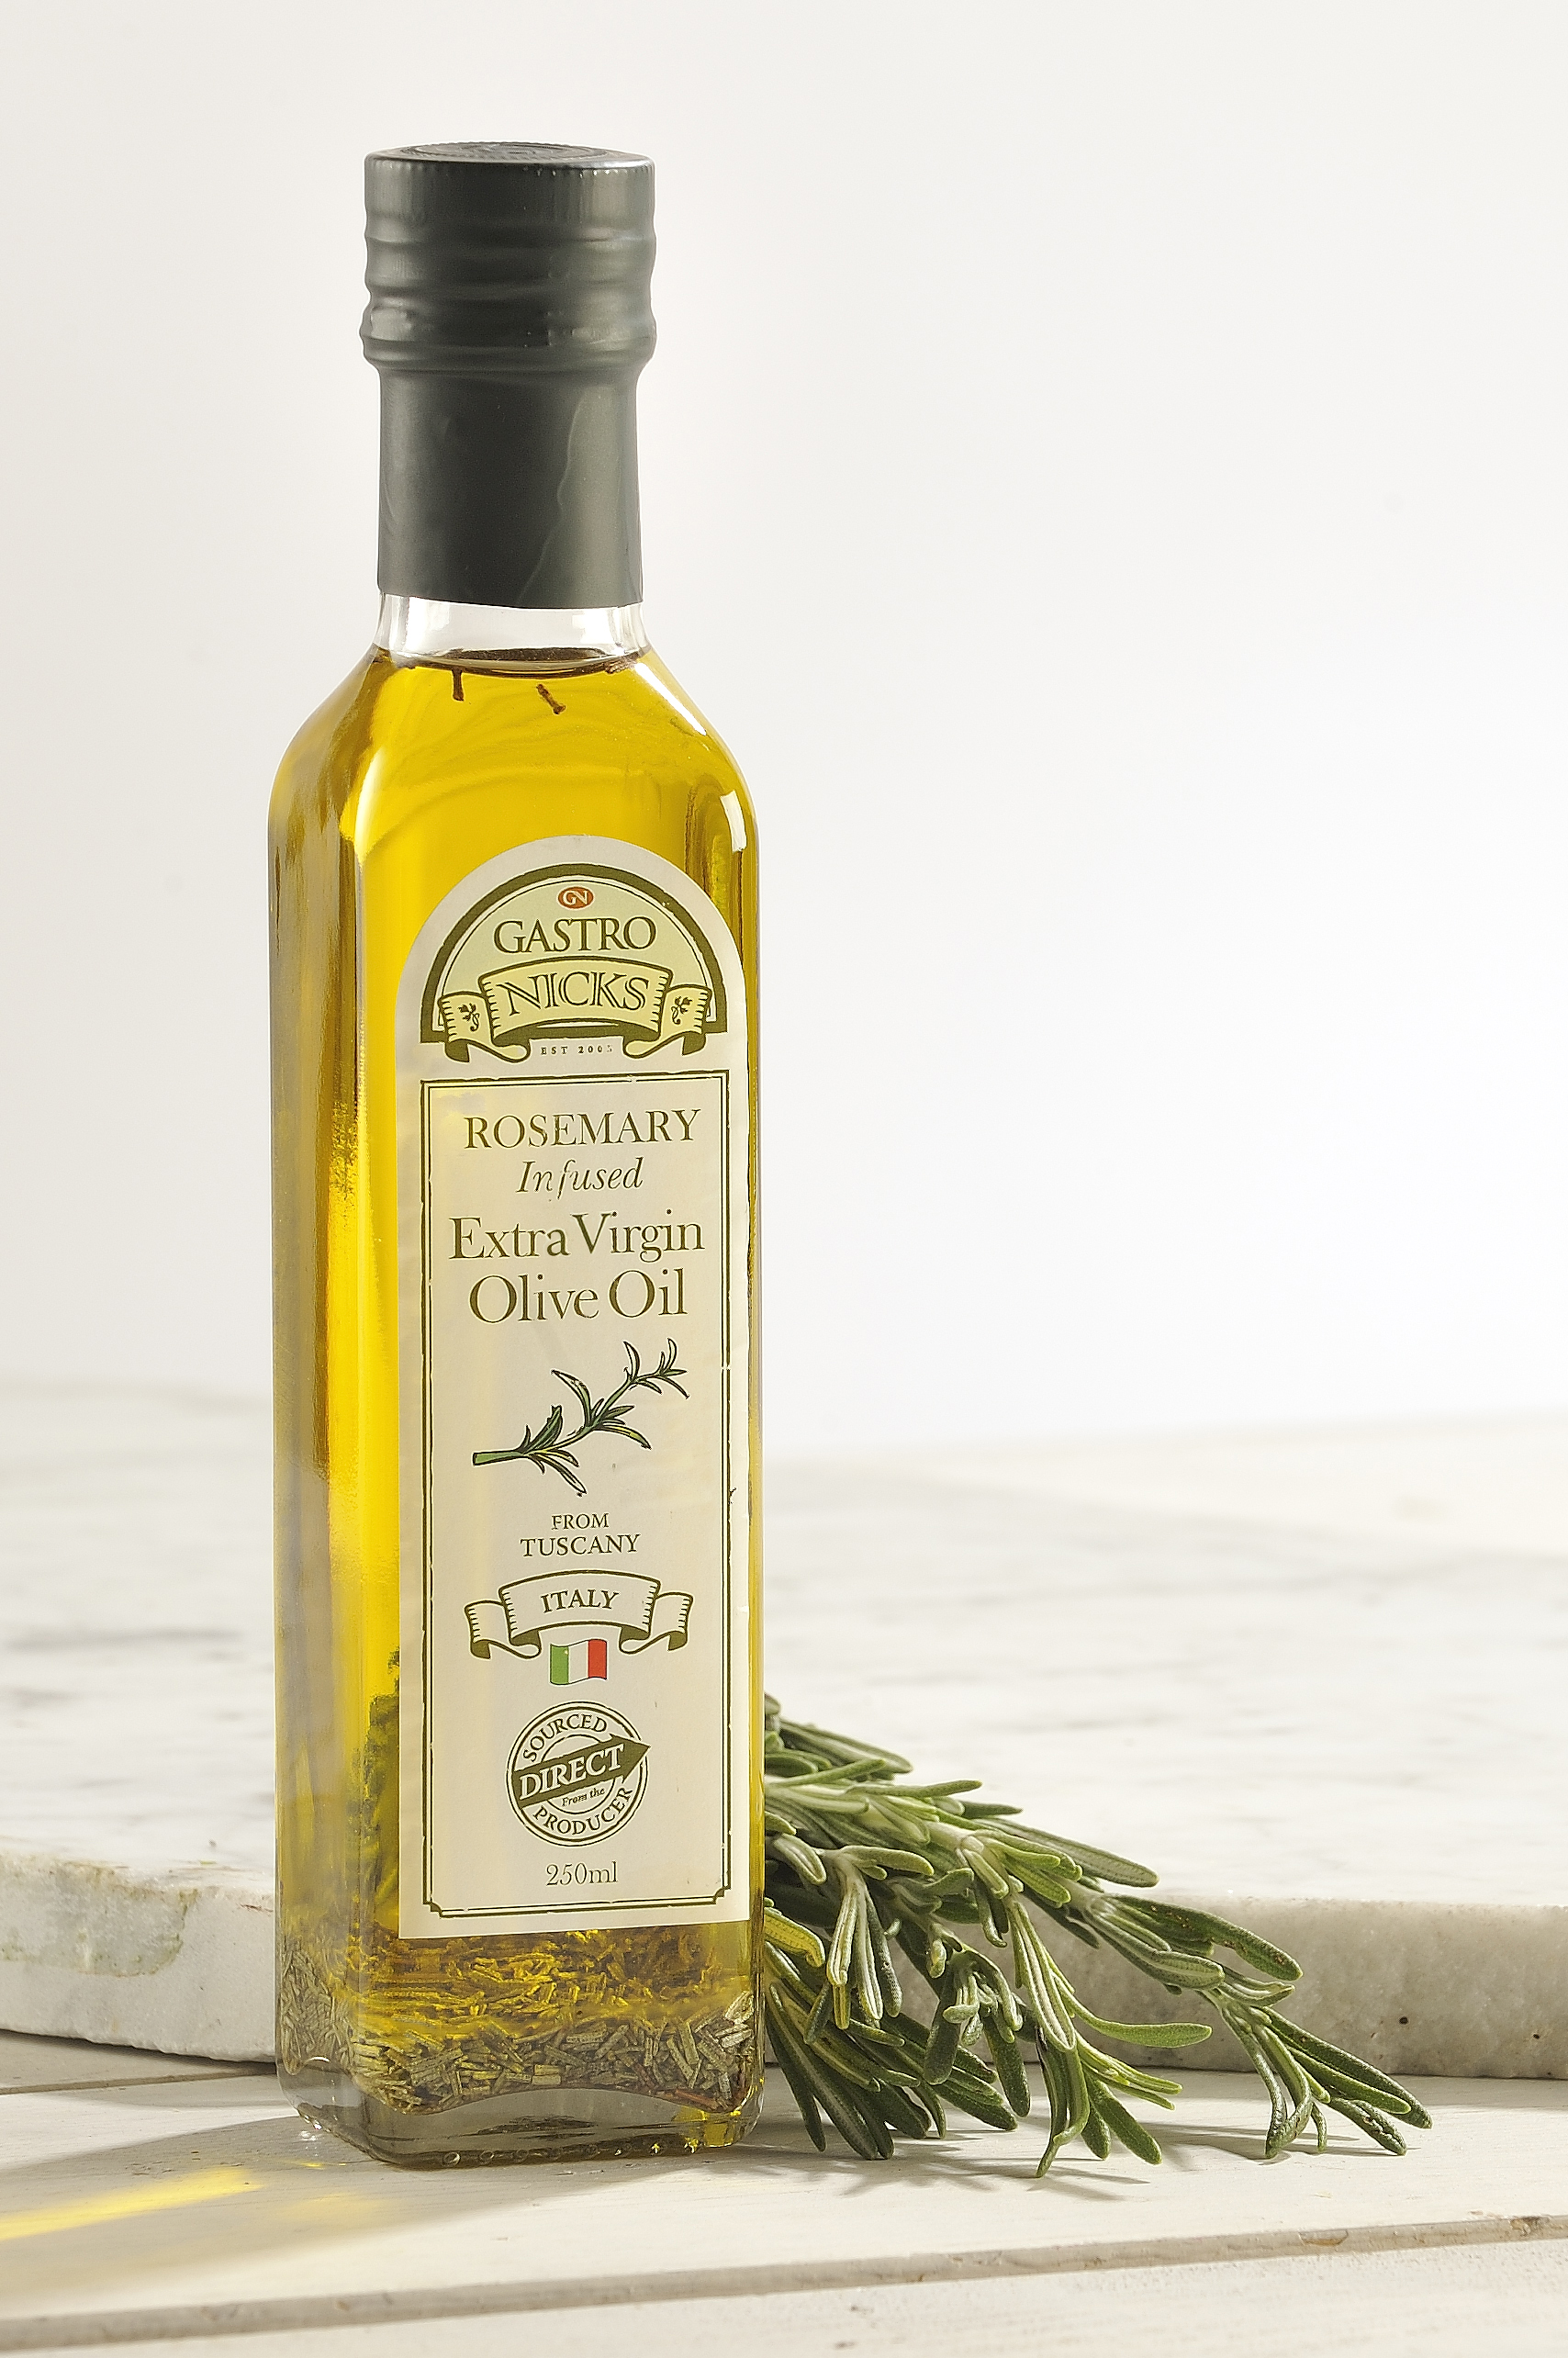 rosemary infused olive oil 6 95 rosemary leaves infused into a ...